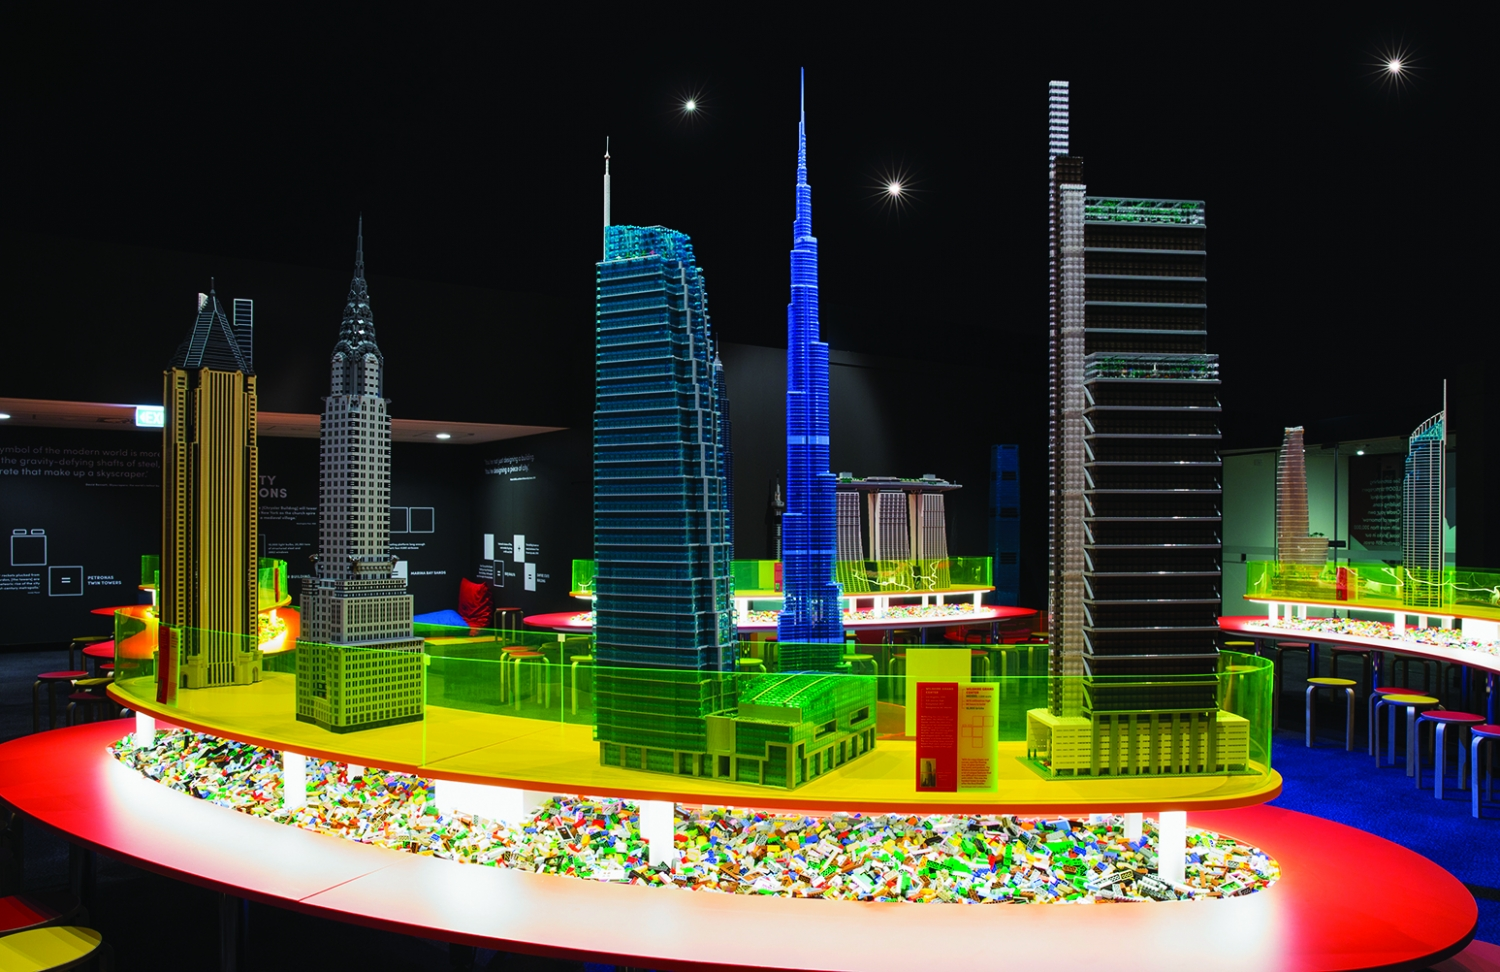 Display of building models created in LEGO bricks.